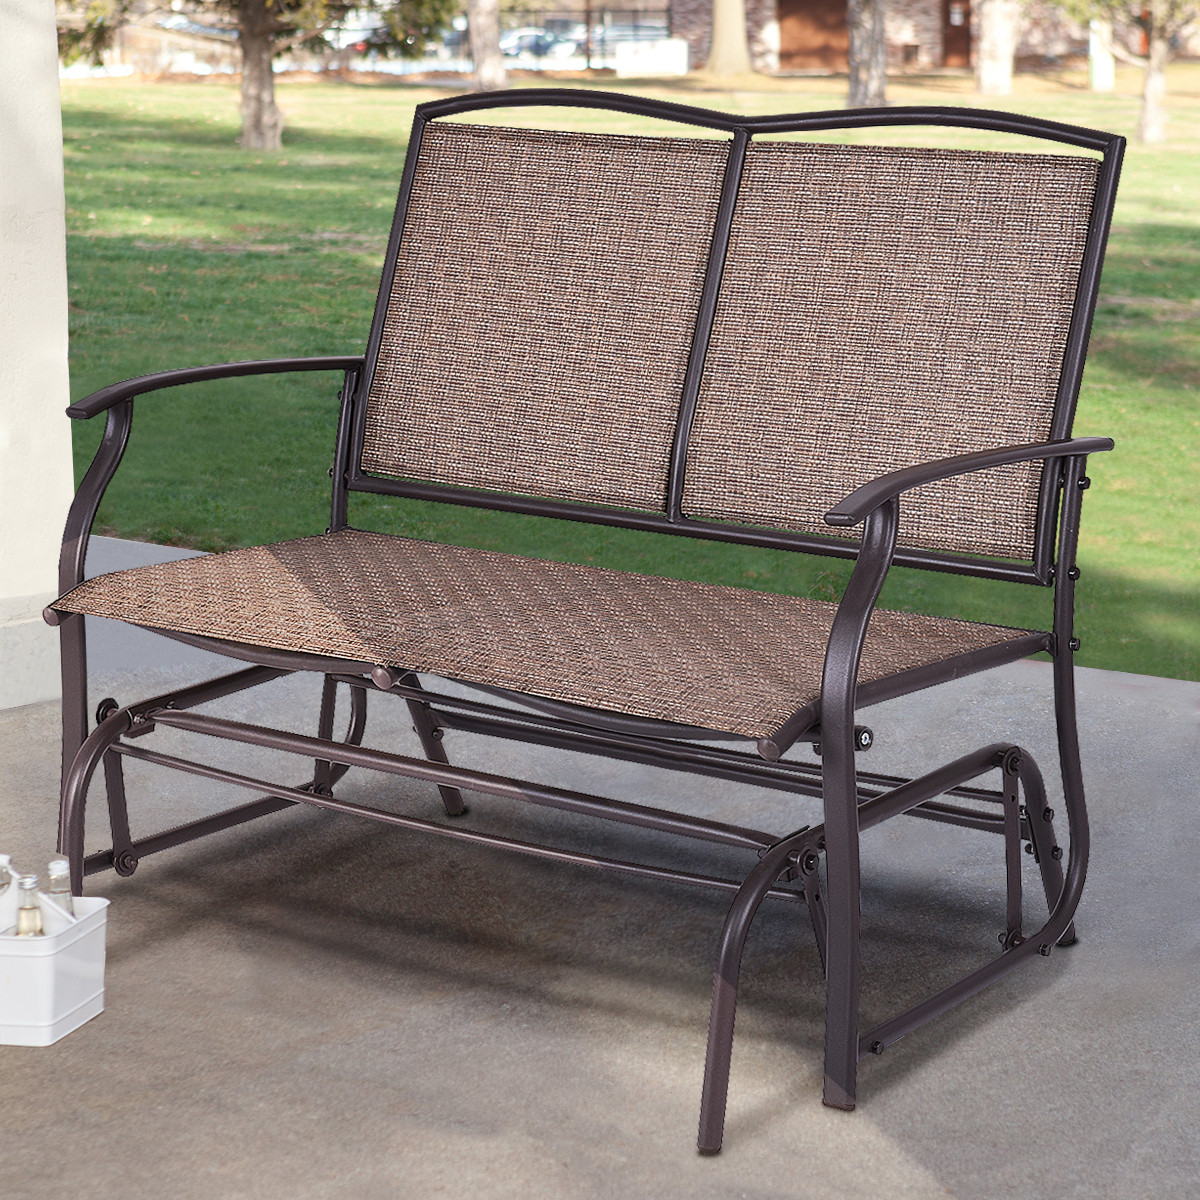 Well Liked Costway Patio Glider Rocking Bench Double 2 Person Chair Loveseat Armchair Backyard – Walmart Regarding 2 Person Antique Black Iron Outdoor Gliders (View 20 of 25)